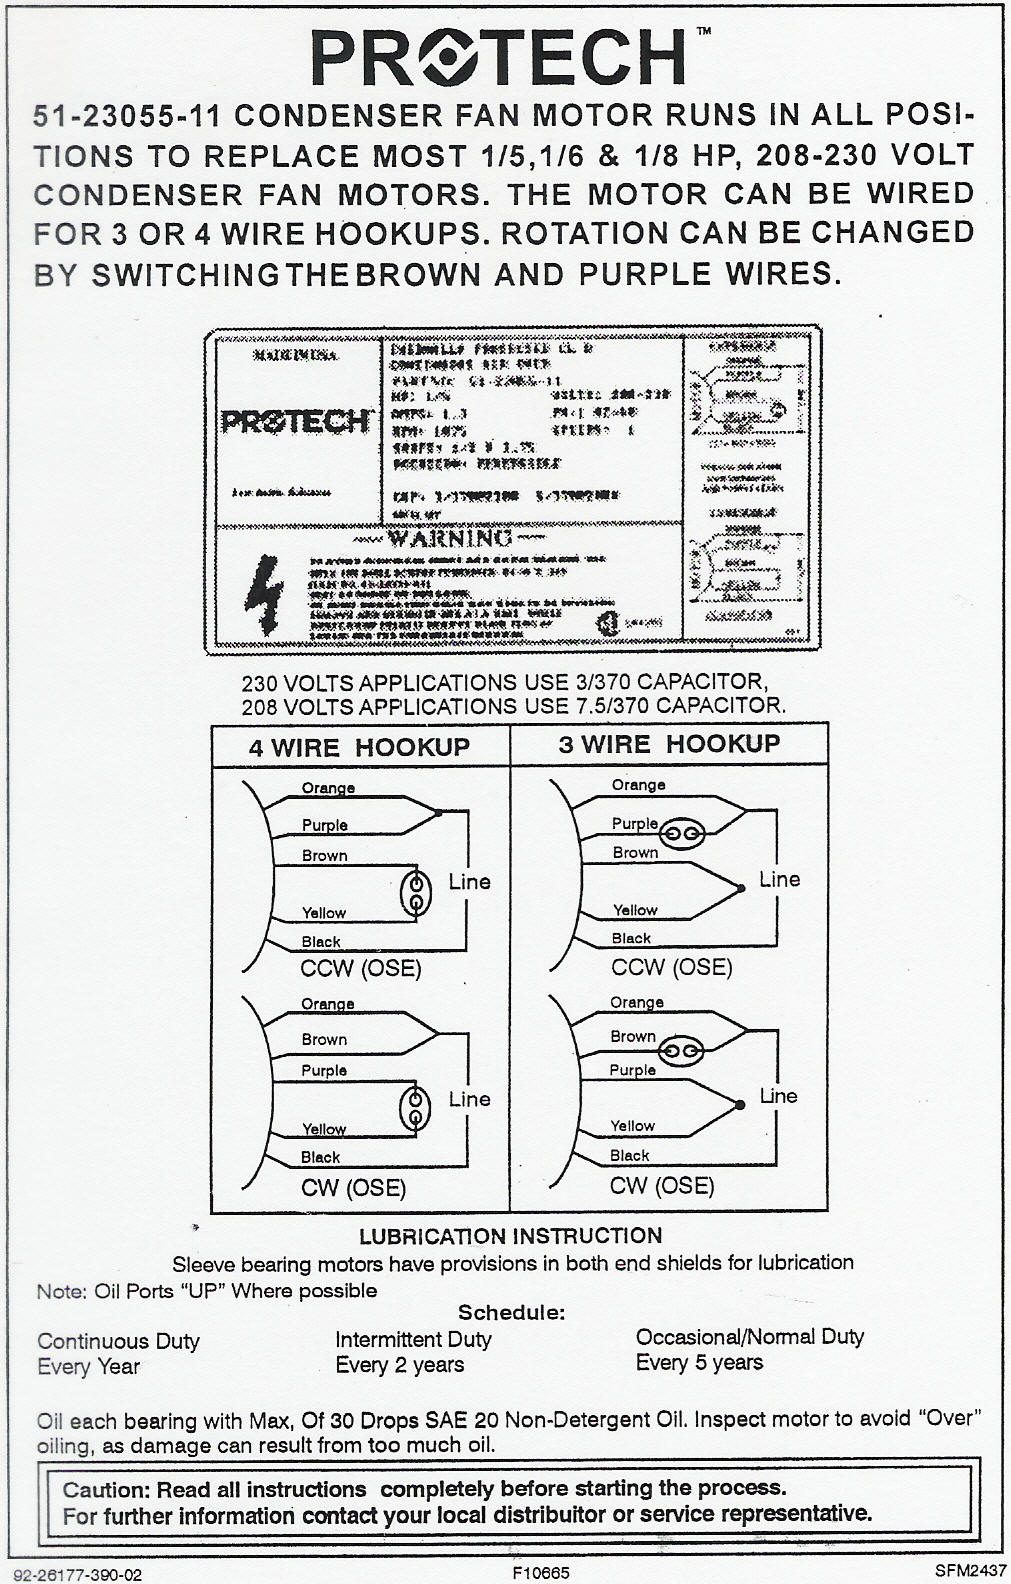 51 23055 11 wiring diagram rheem ruud condenser fan motor 51 23055 11 wiring diagram rheem gas furnace wiring diagram at bakdesigns.co